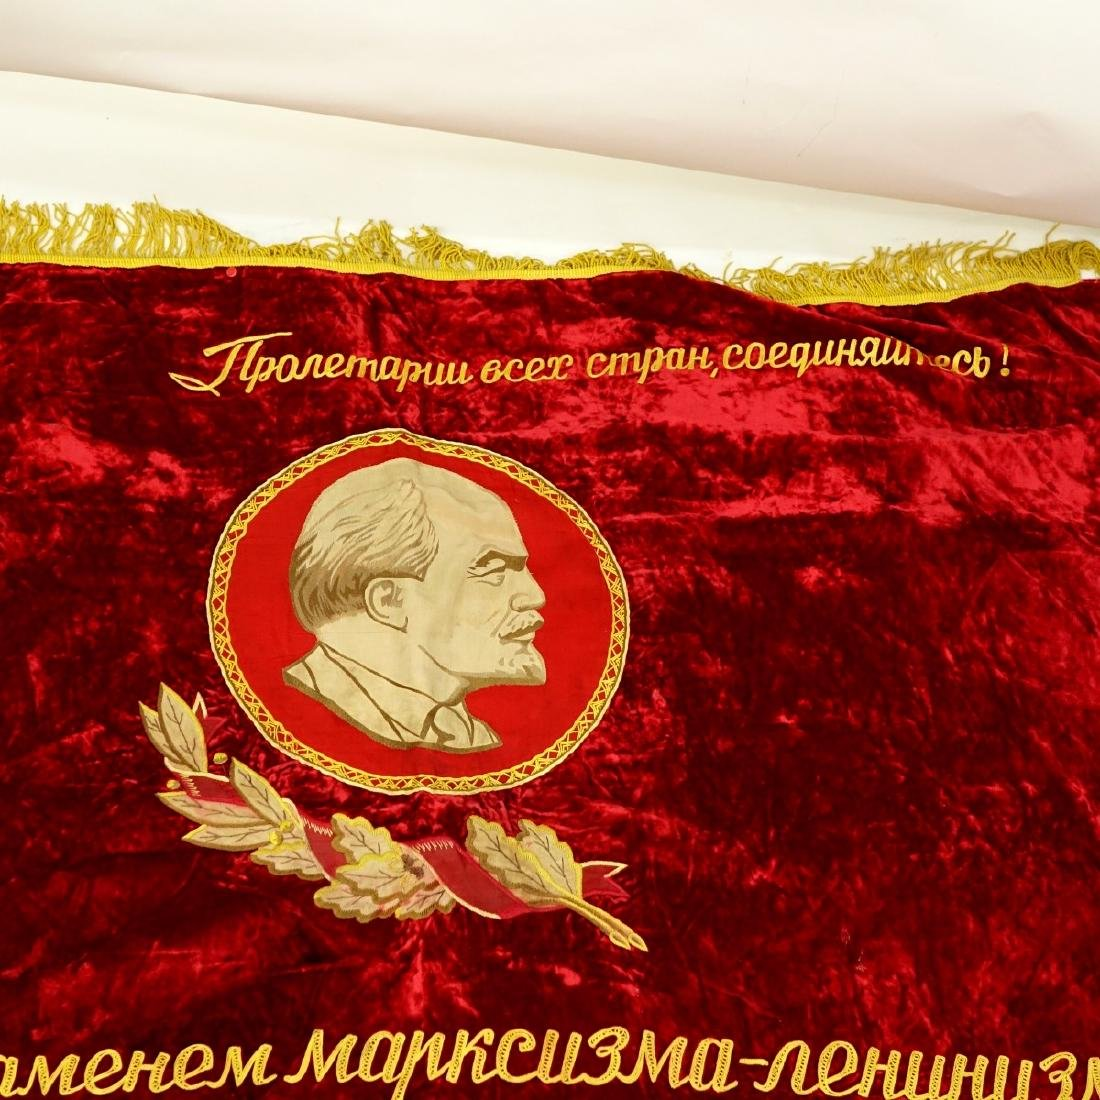 20th Century Russian Soviet Era Banner - 3